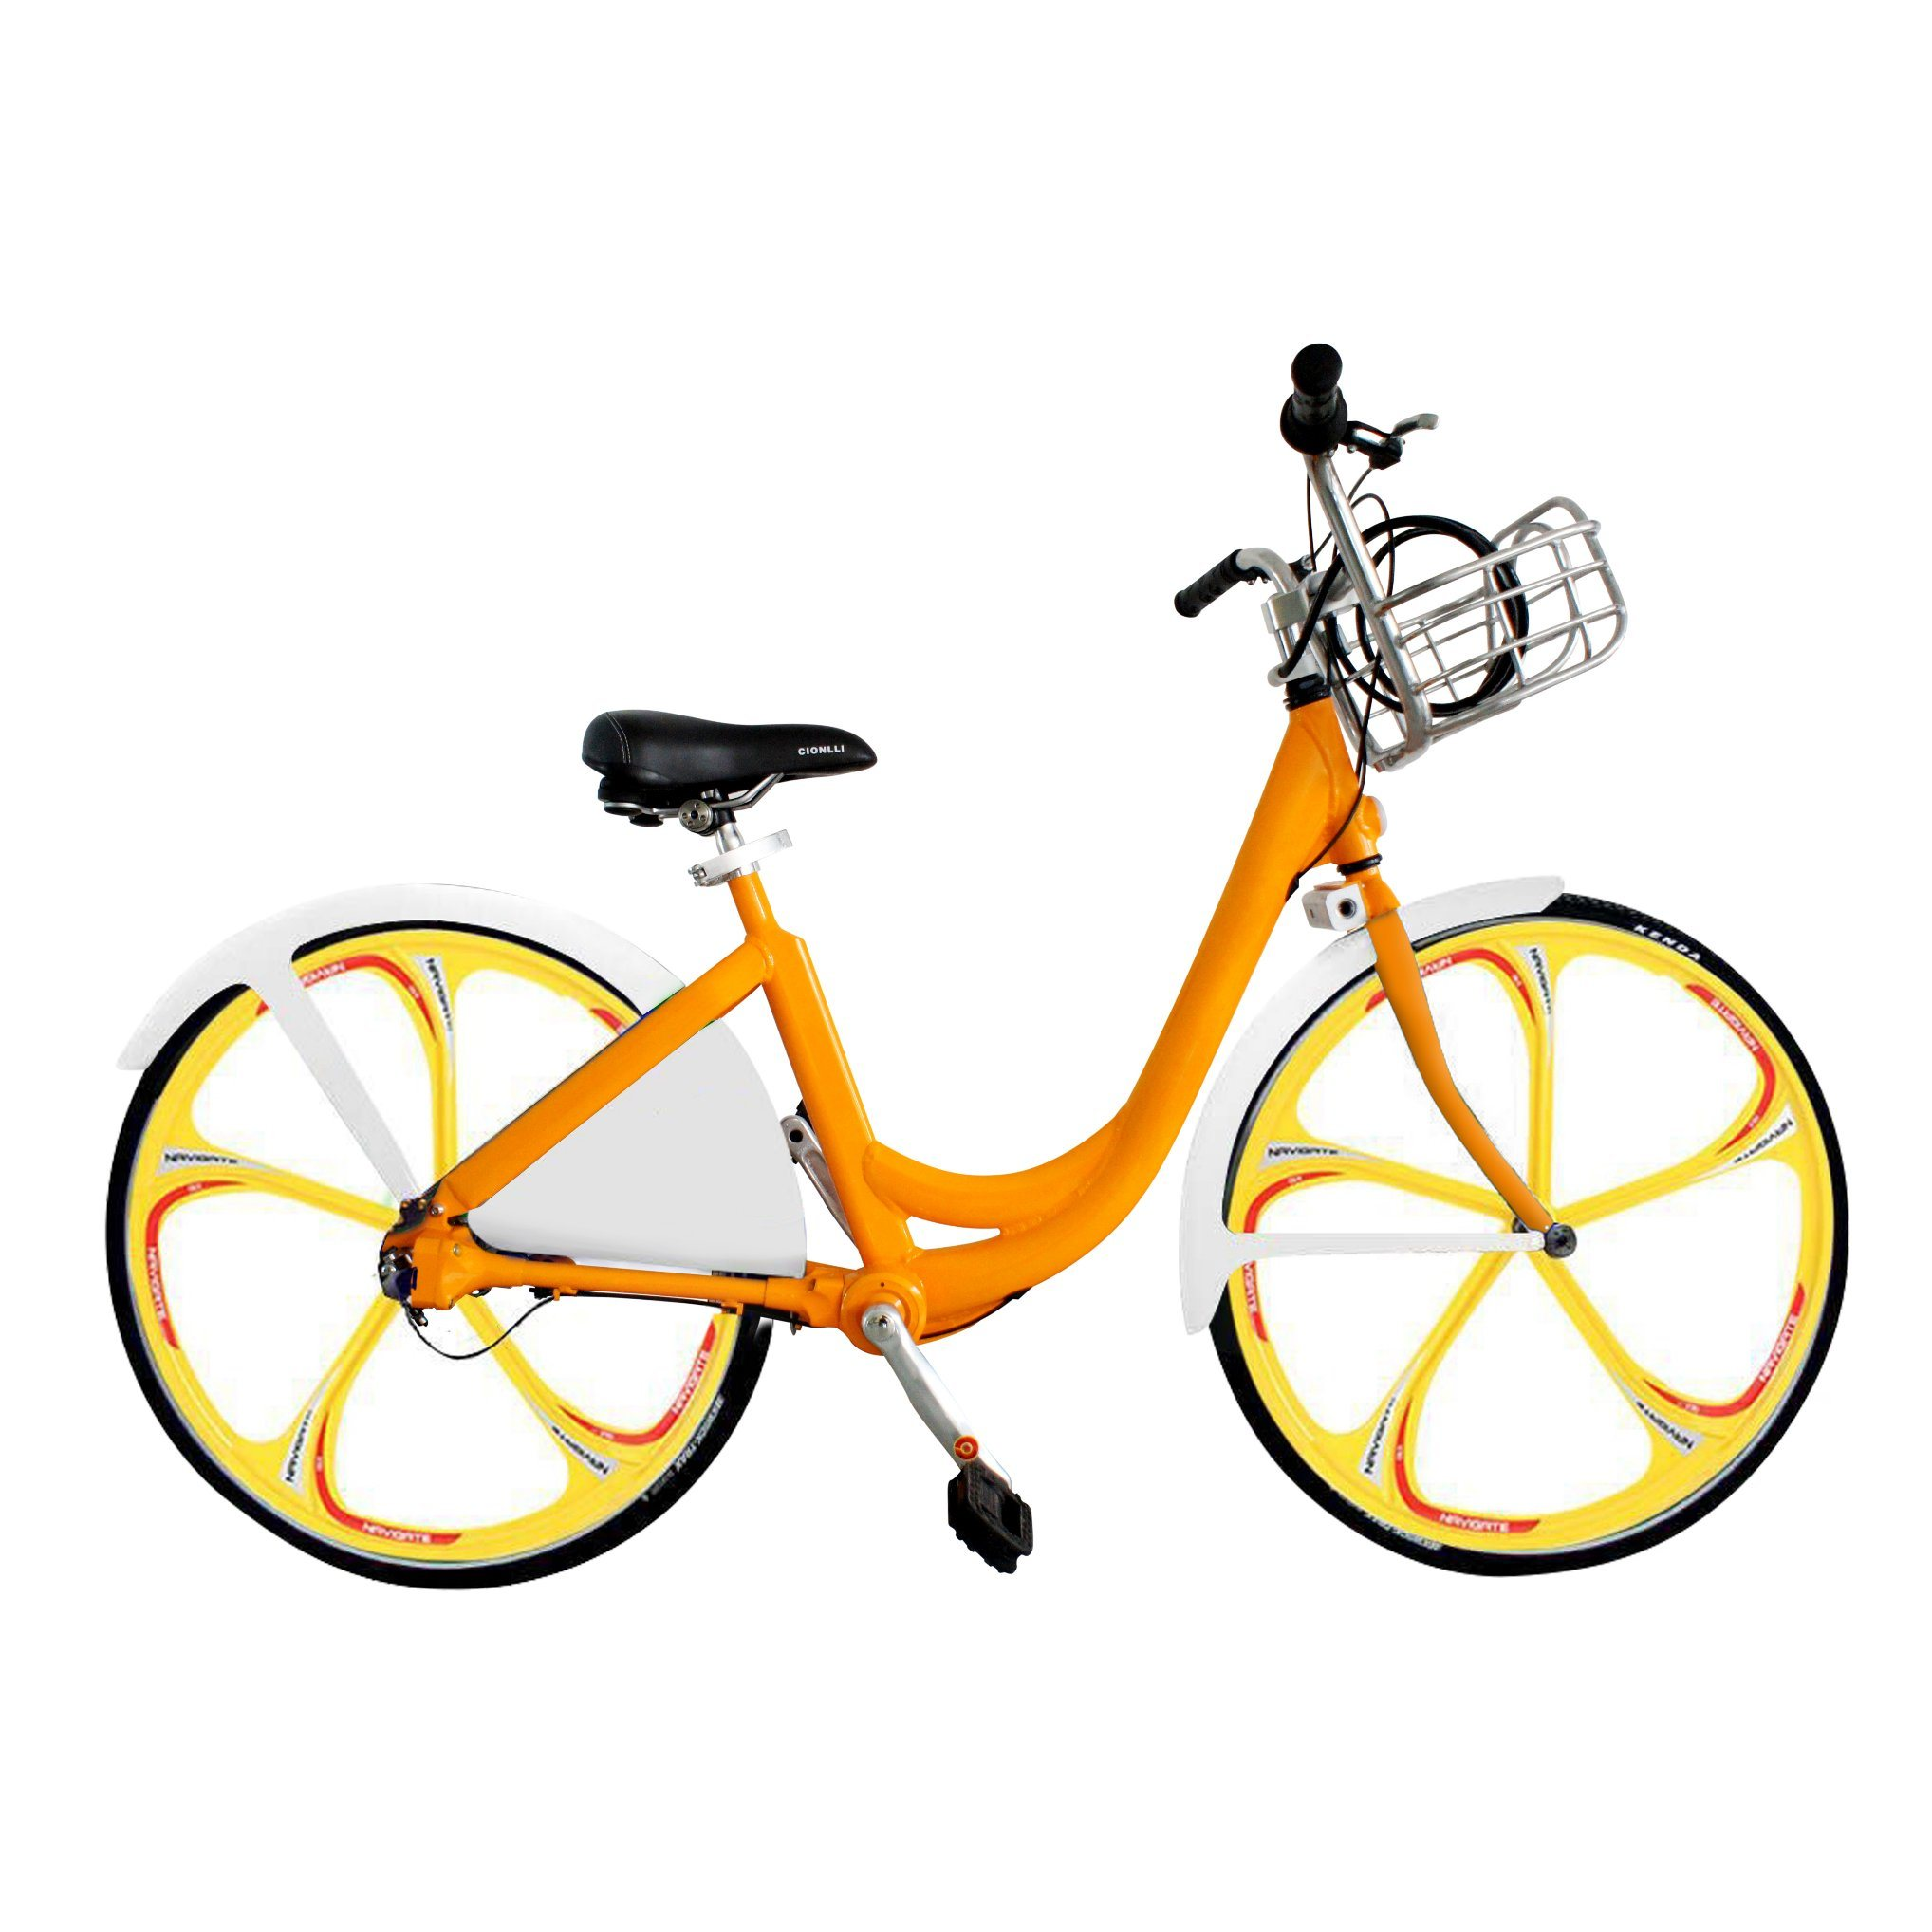 Mobike Style Self-Rental Shaft Drive Bike Sharing System with 3 5 Spoke Integrated Rim Wheel Smart GPRS Lock APP Supported